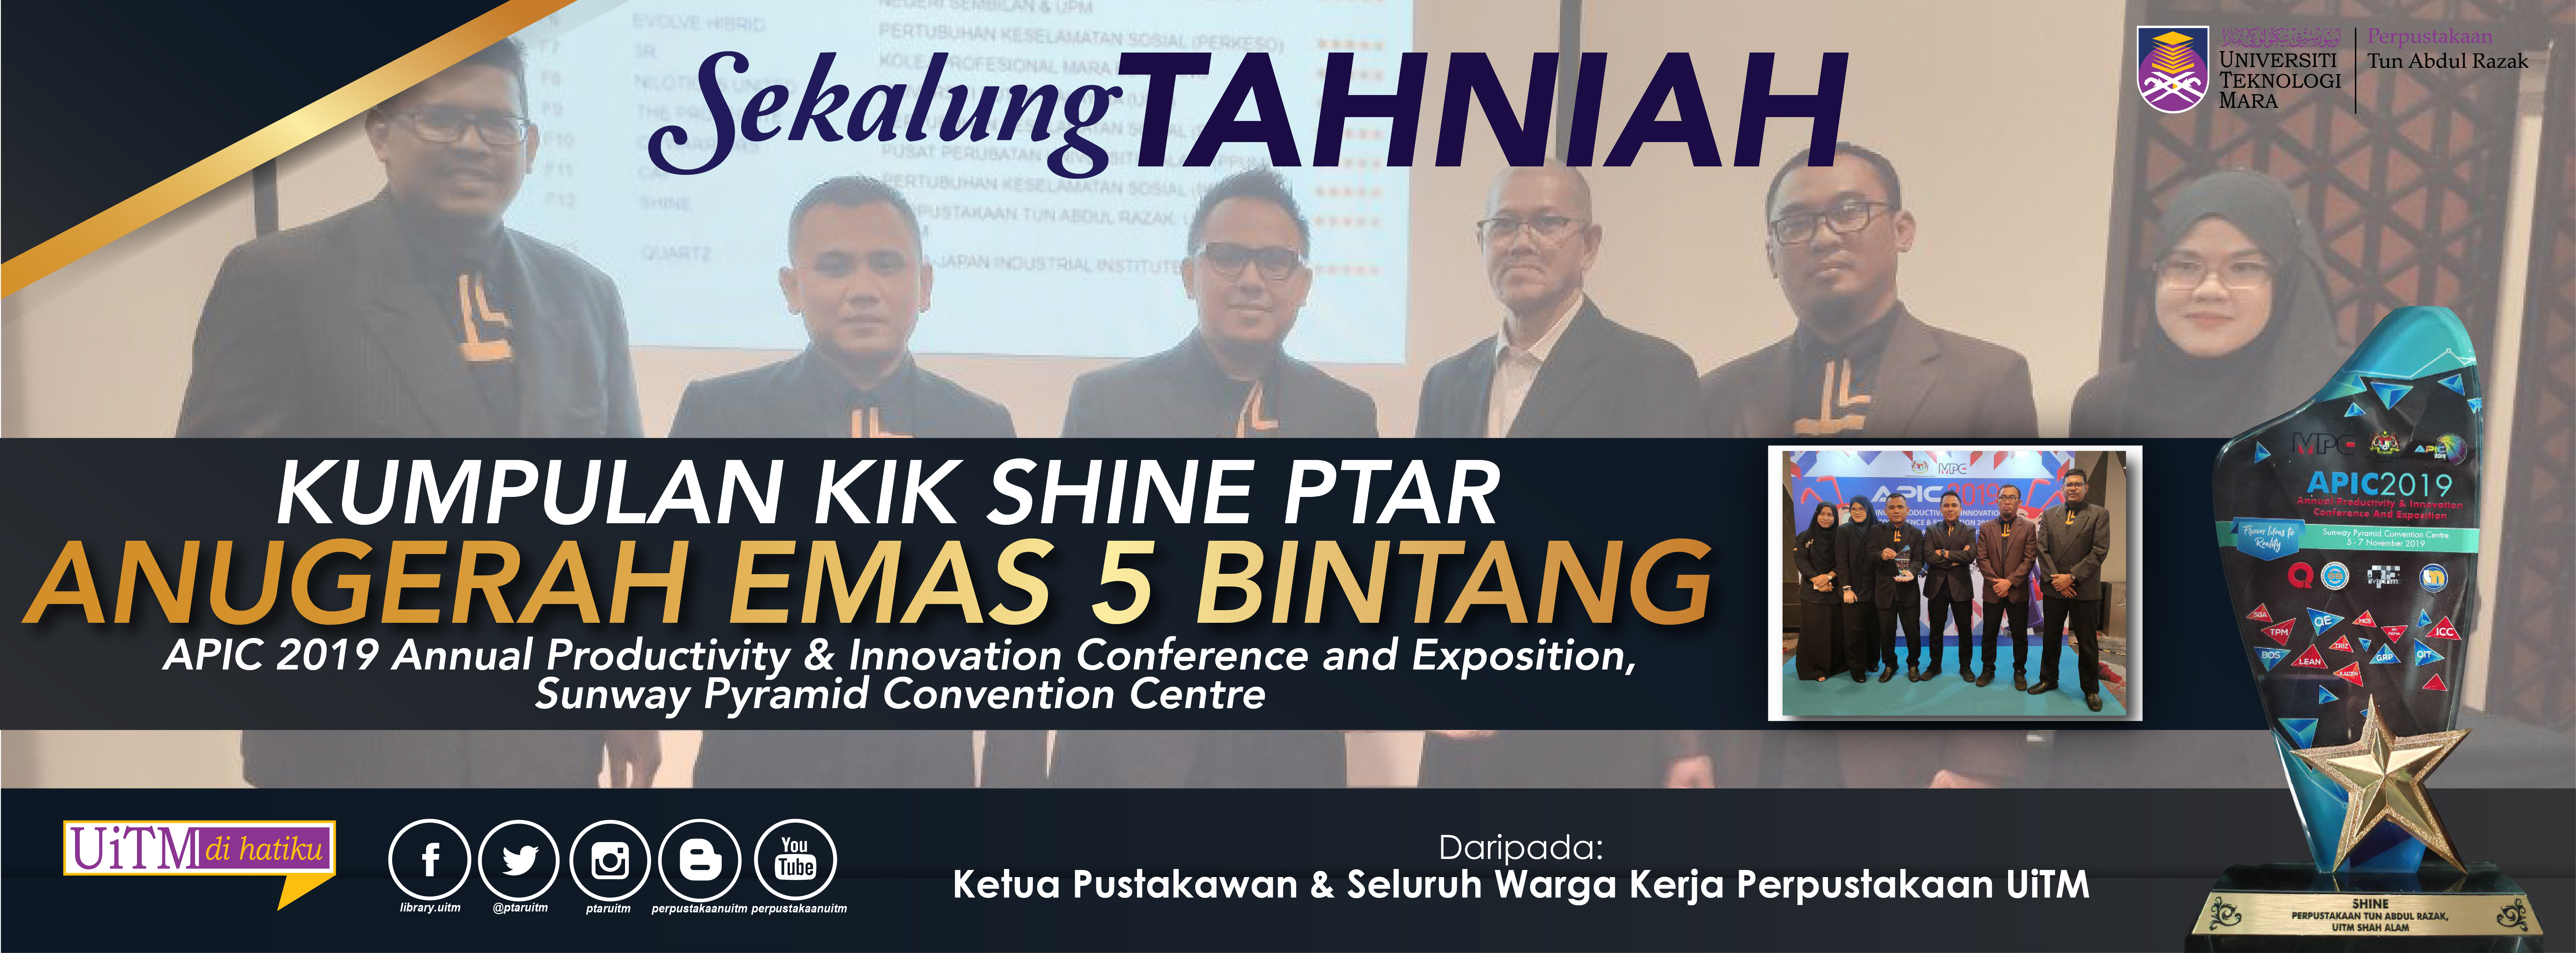 Tahniah KIK Shine Anugerah Emas 5 Bintang di APIC National Team Excellence